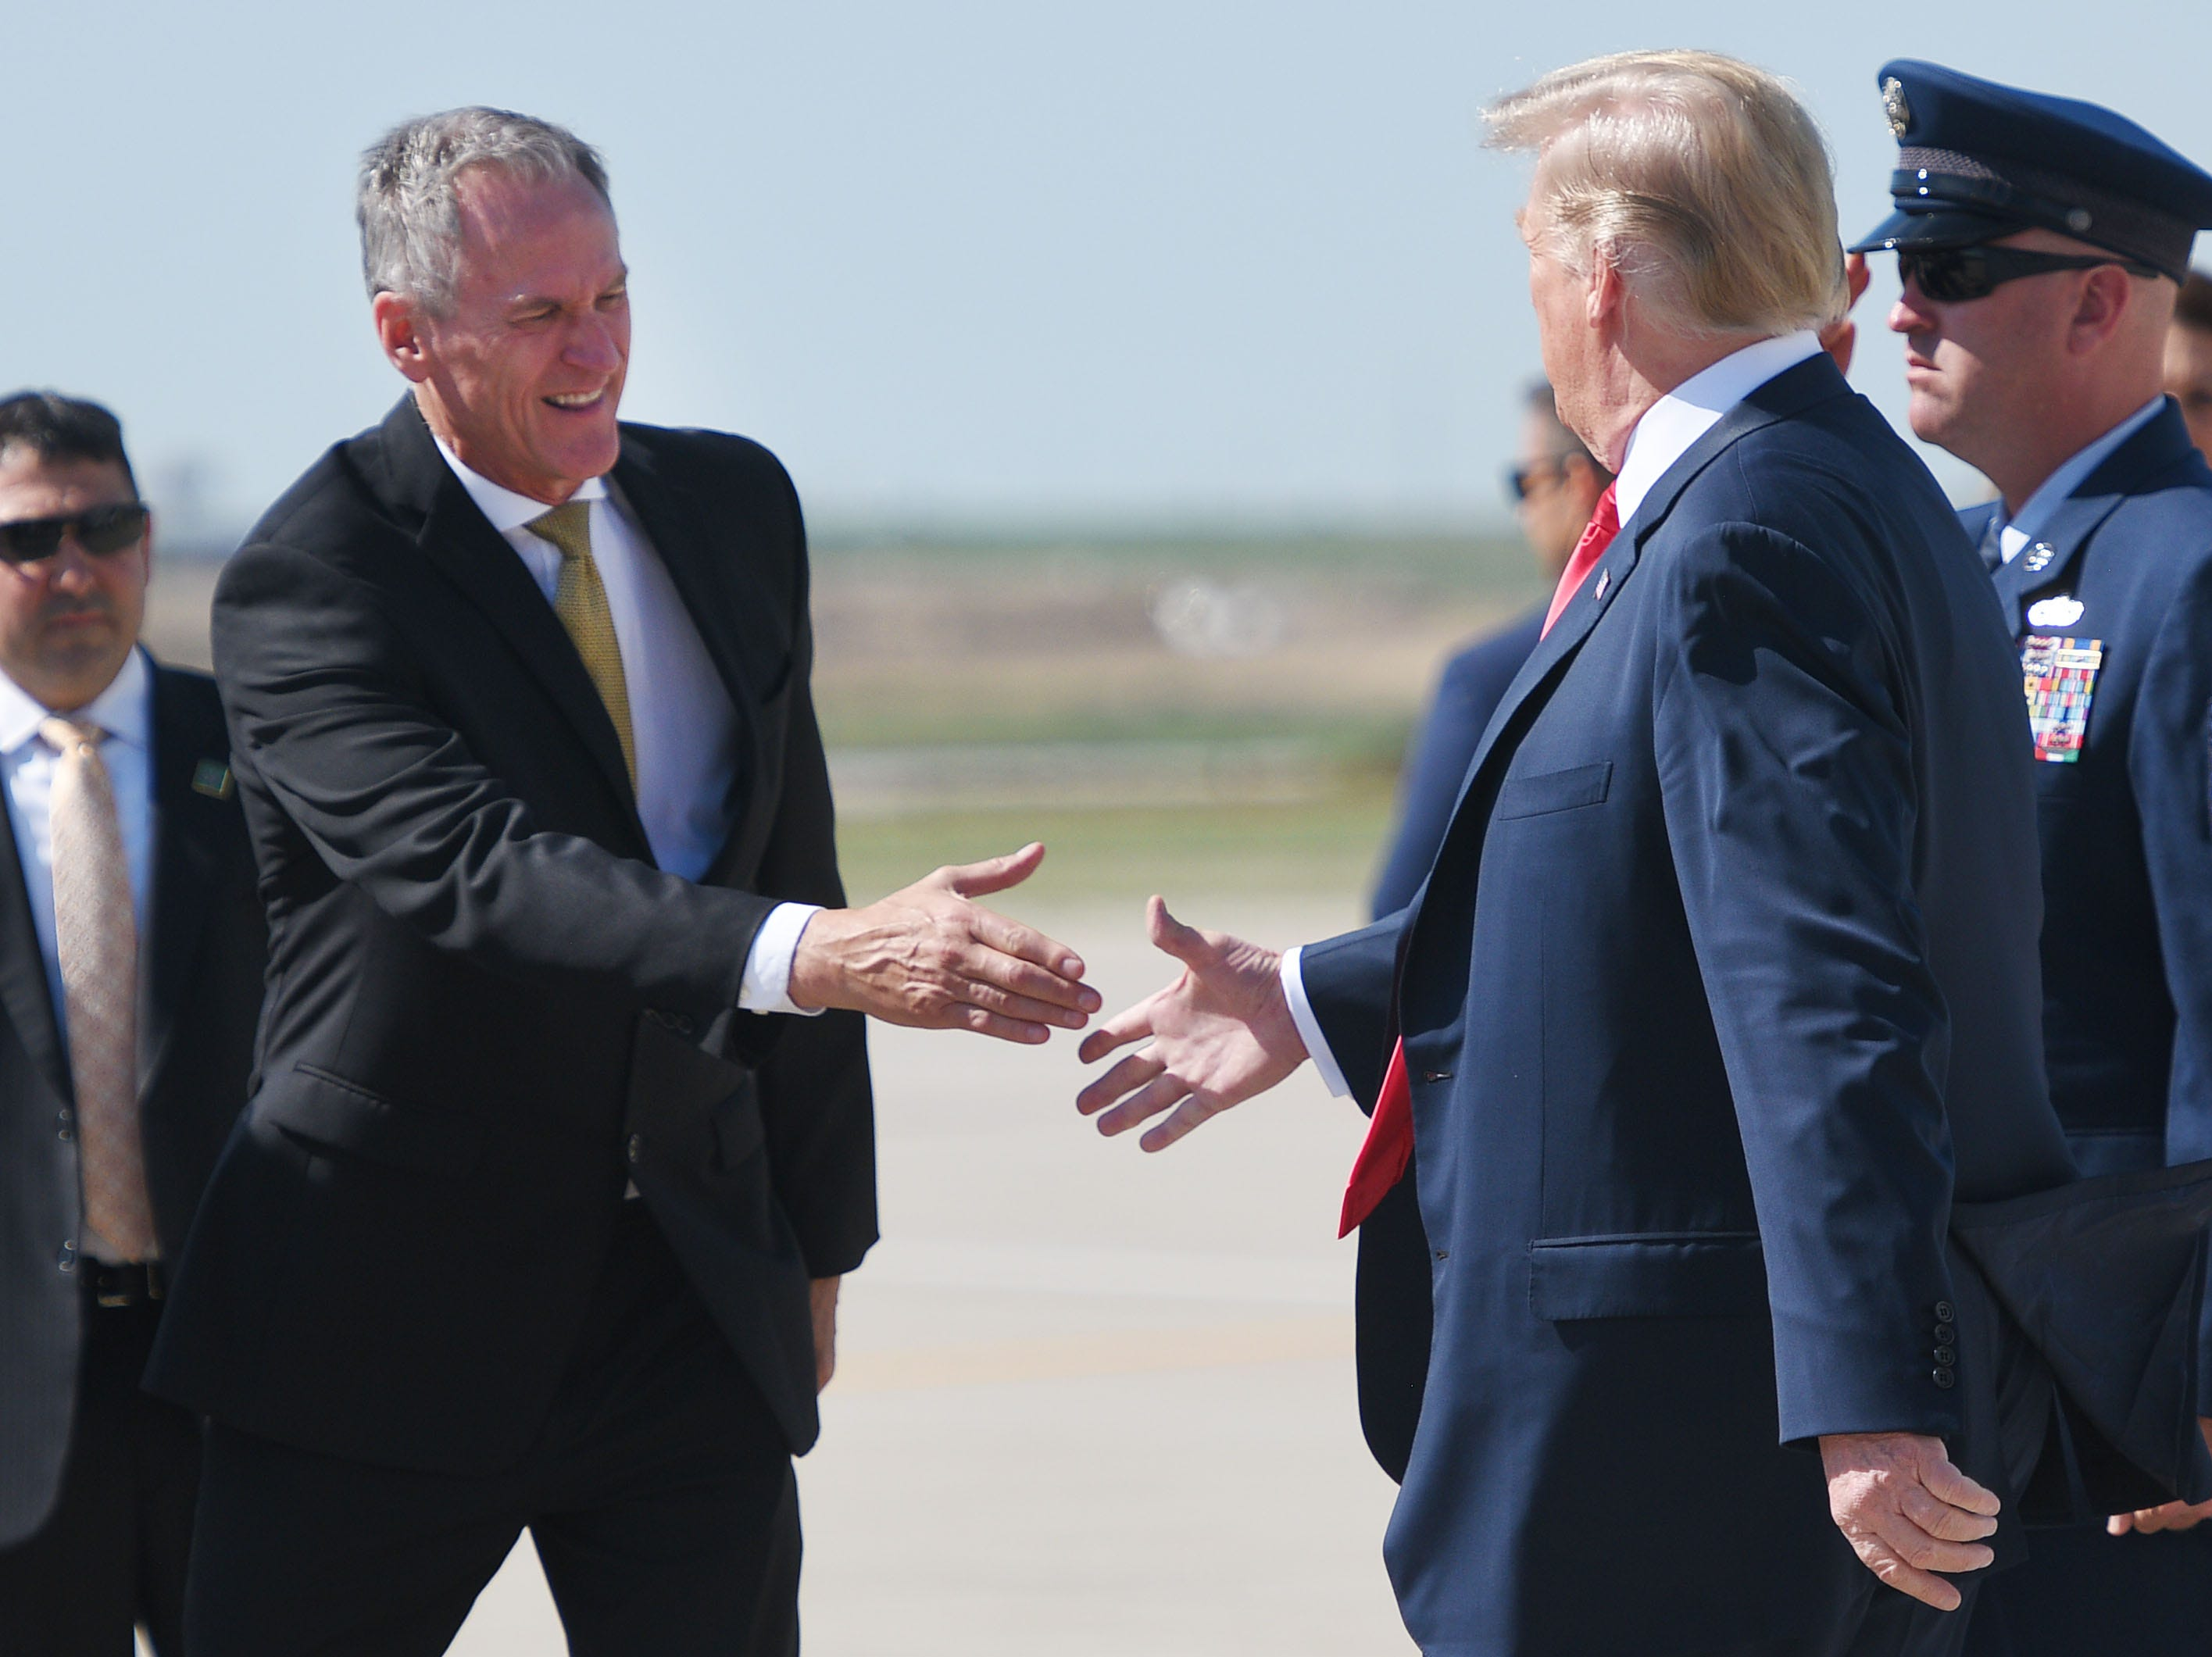 Governor of South Dakota Dennis Daugaard shakes President Donald Trump's hand as he exits Air Force One Friday, Sept. 7, at South Dakota Air National Guard in Sioux Falls.